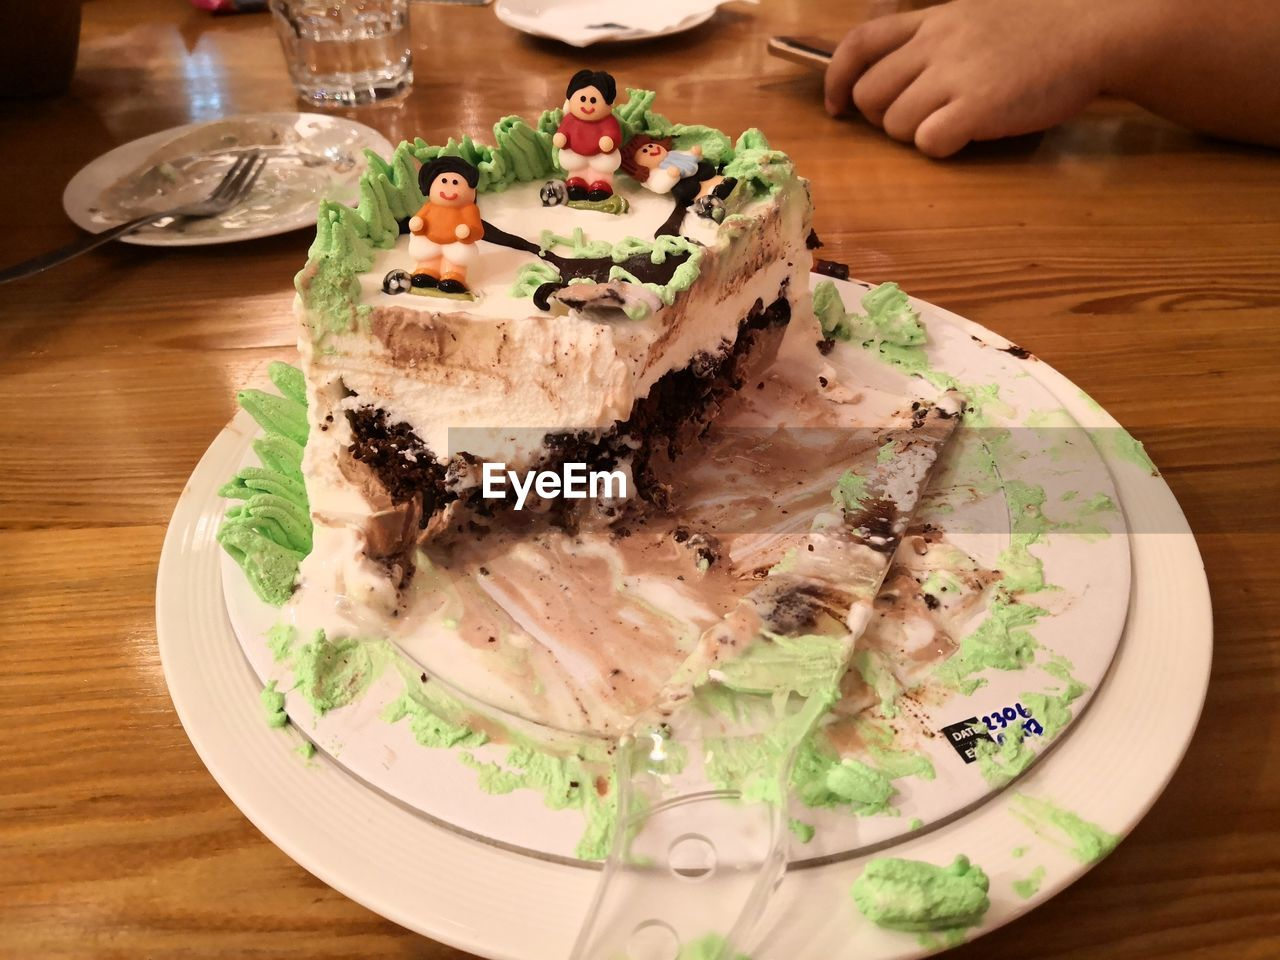 MIDSECTION OF CAKE ON TABLE